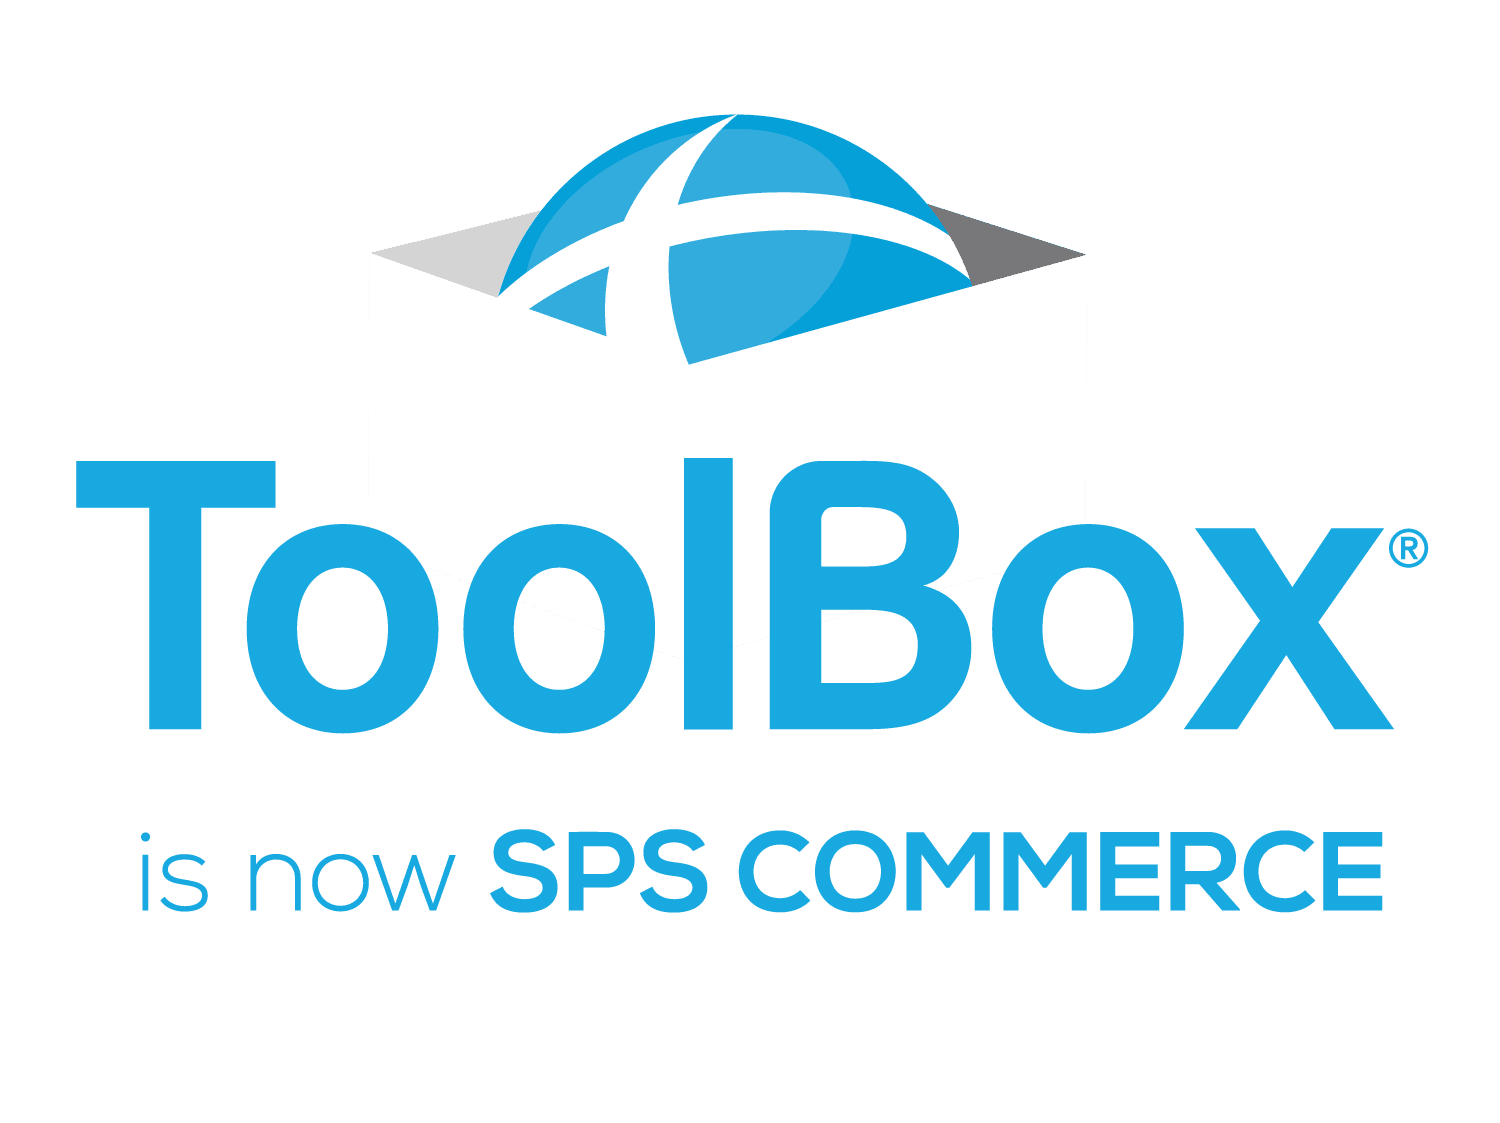 SPS Acquires Category Management & POS Analytics Provider ToolBox